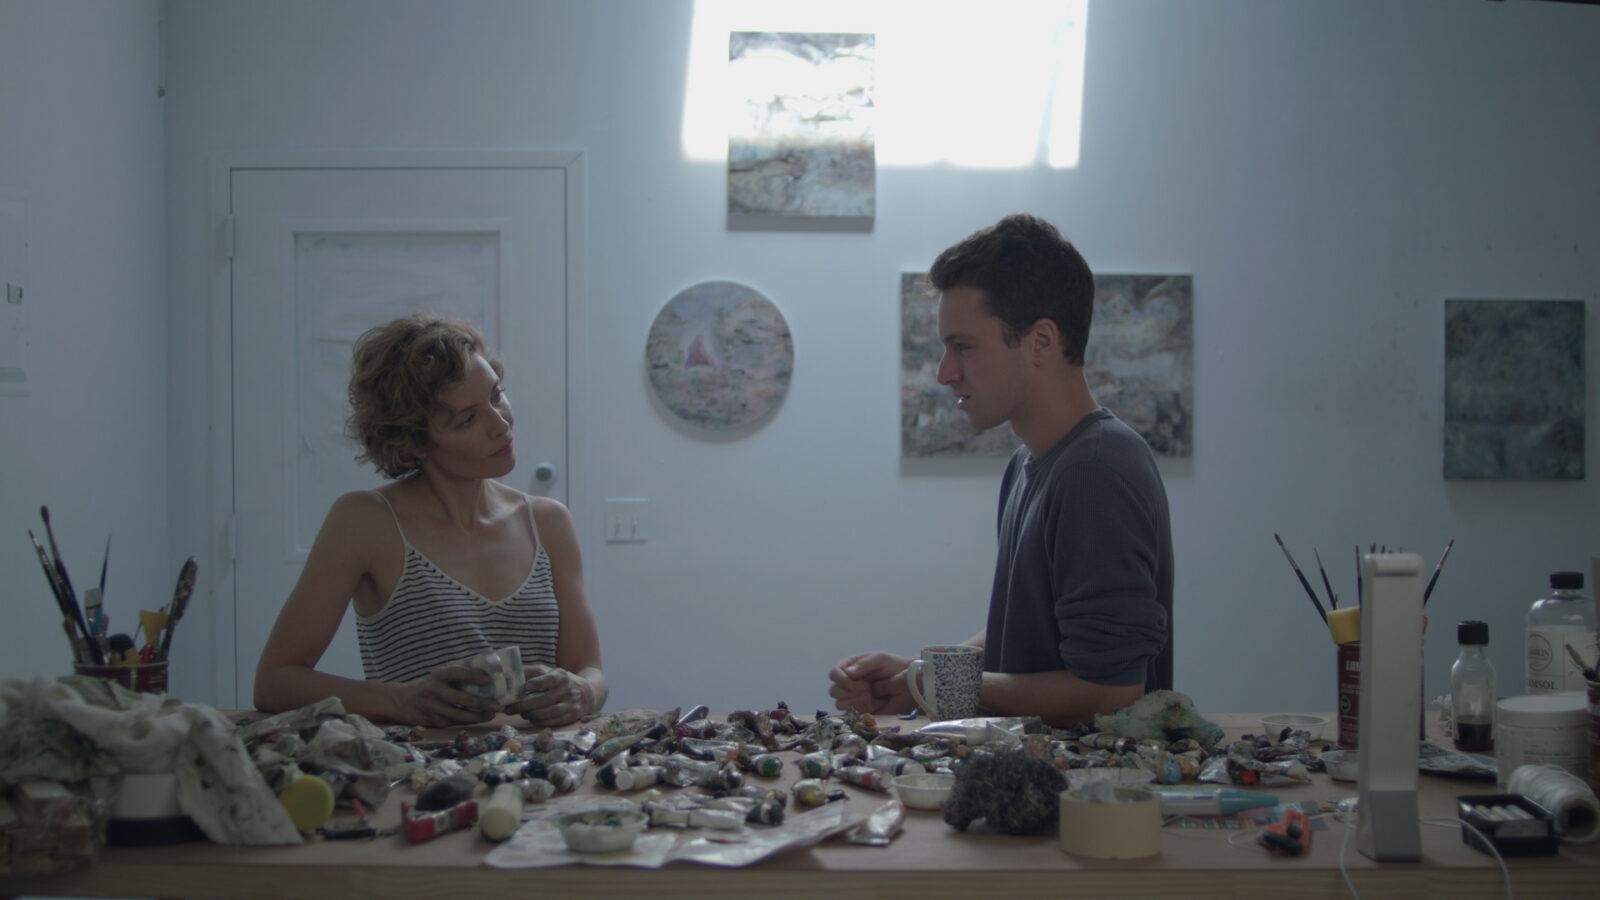 A man and a woman looking at each other with a bunch of paint on the table.